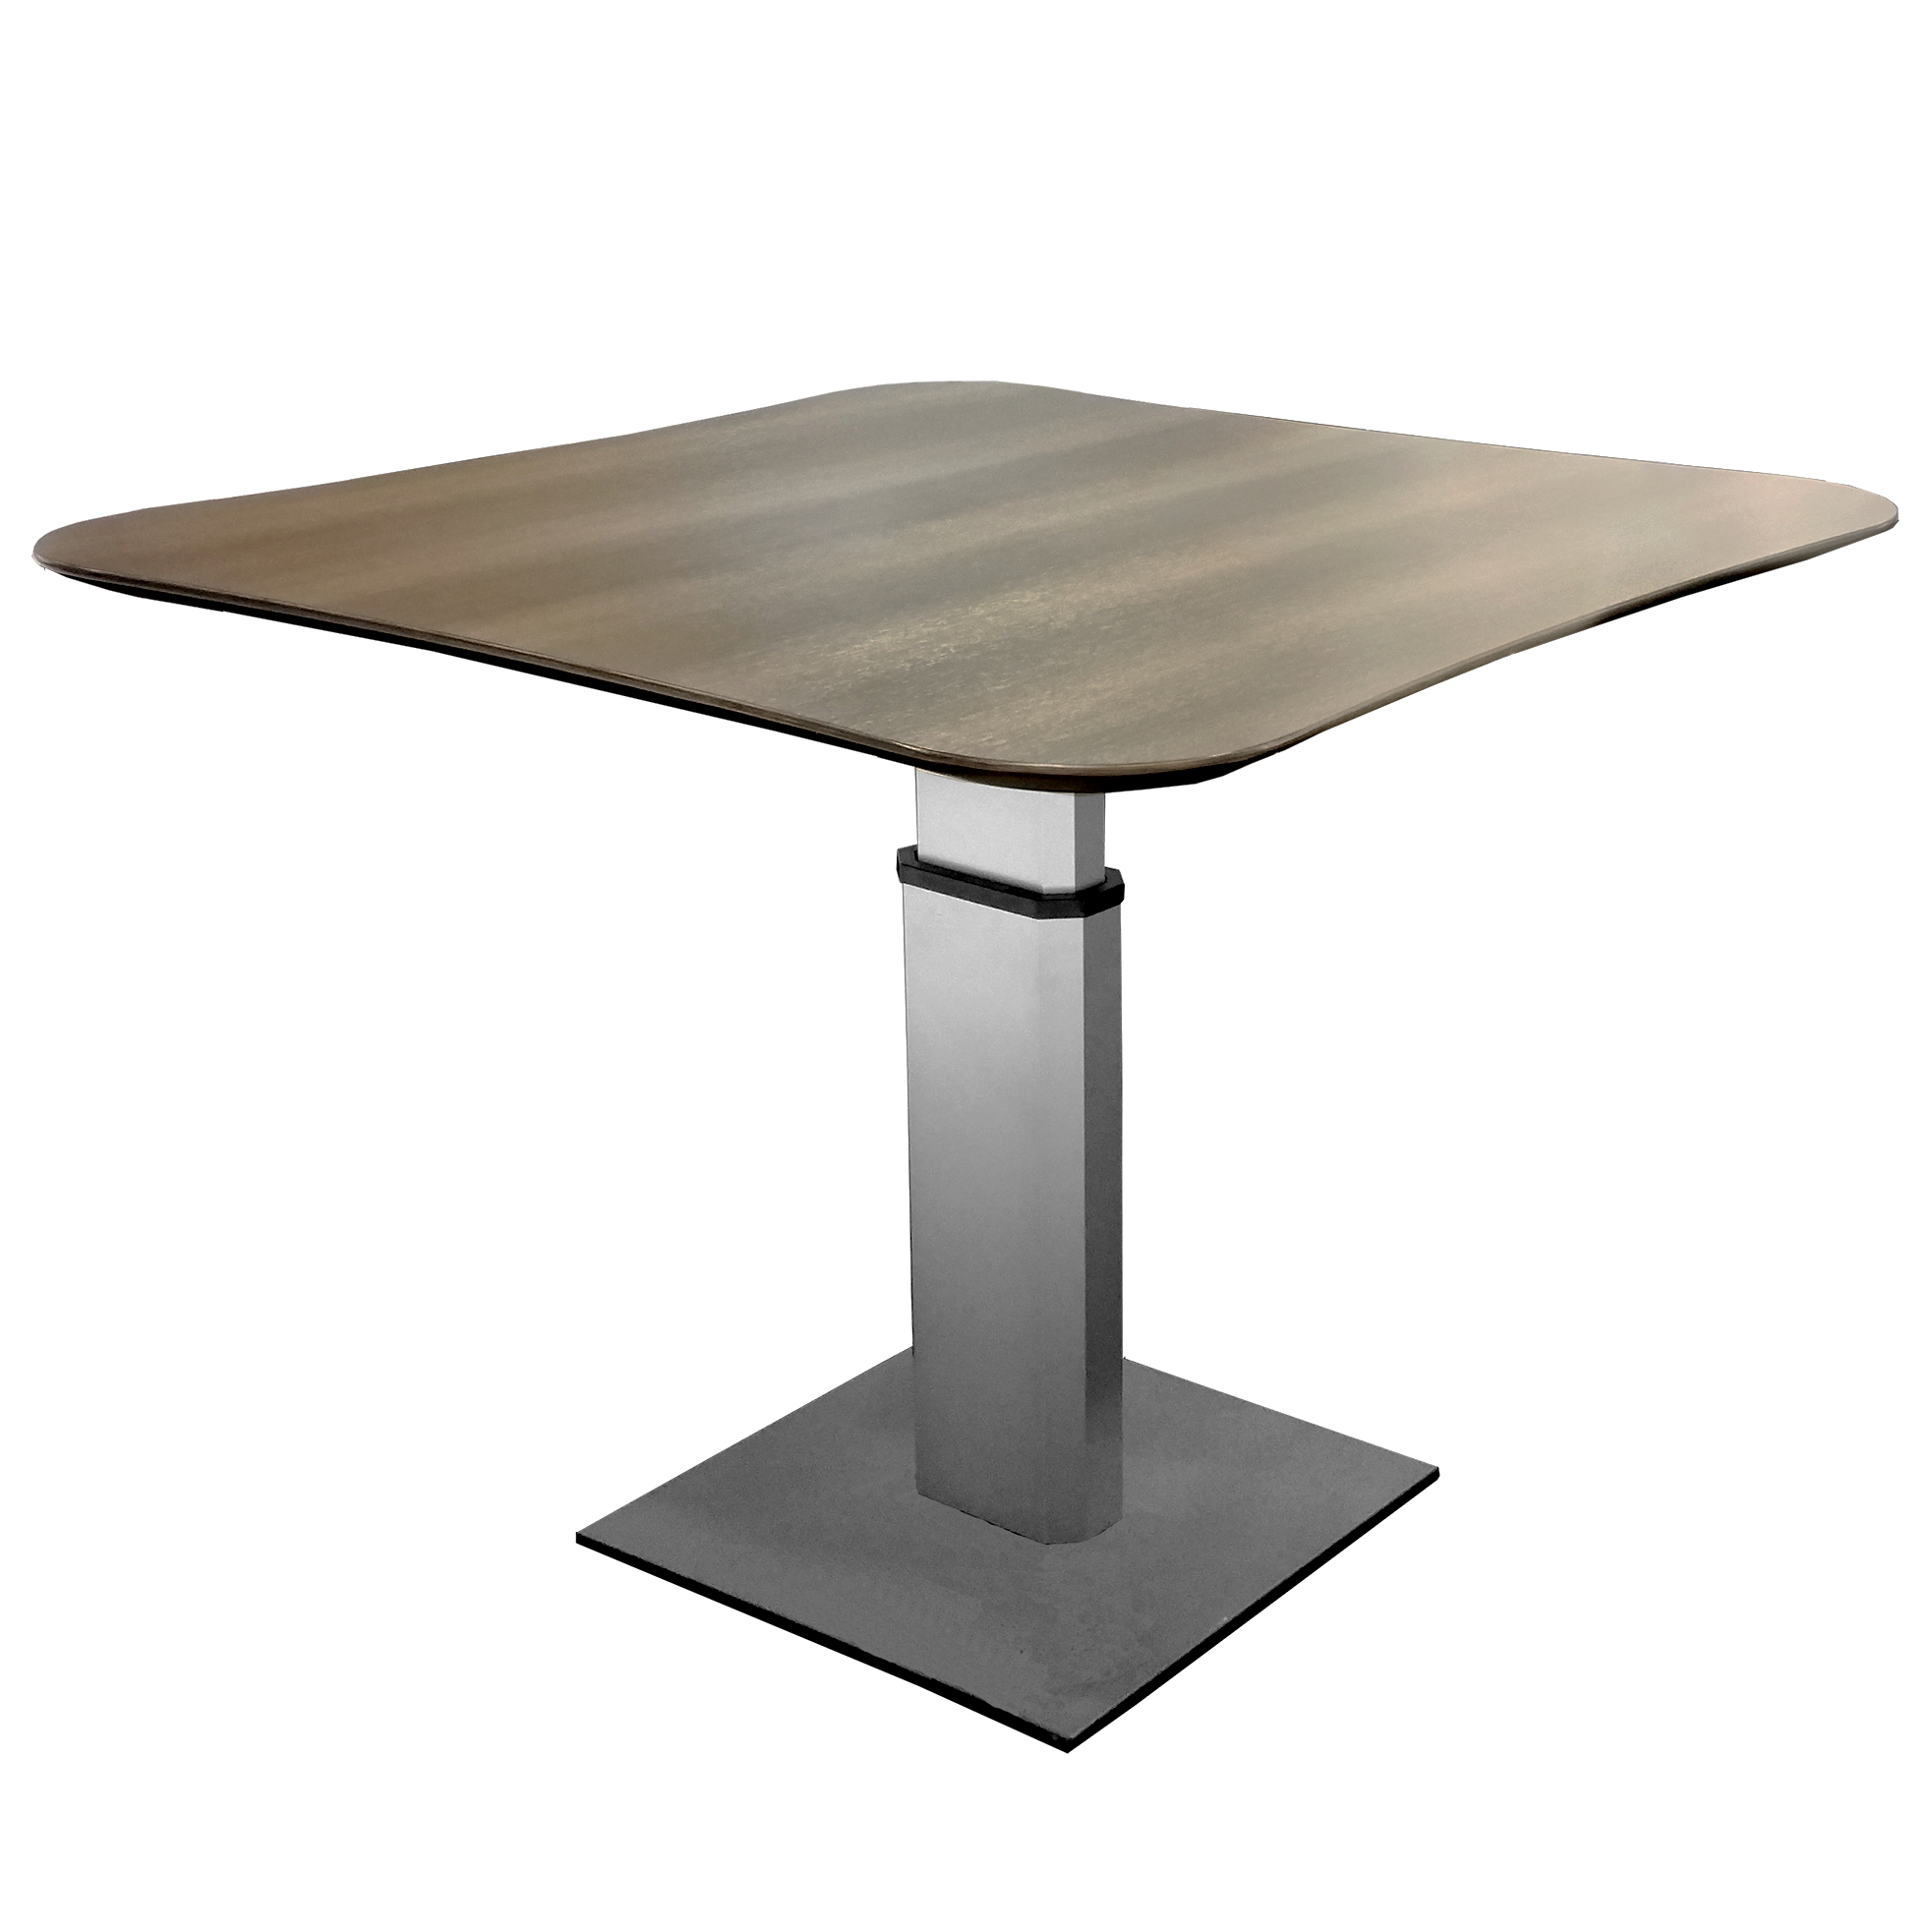 103 reach height adjustable table share lowres hires favorites print